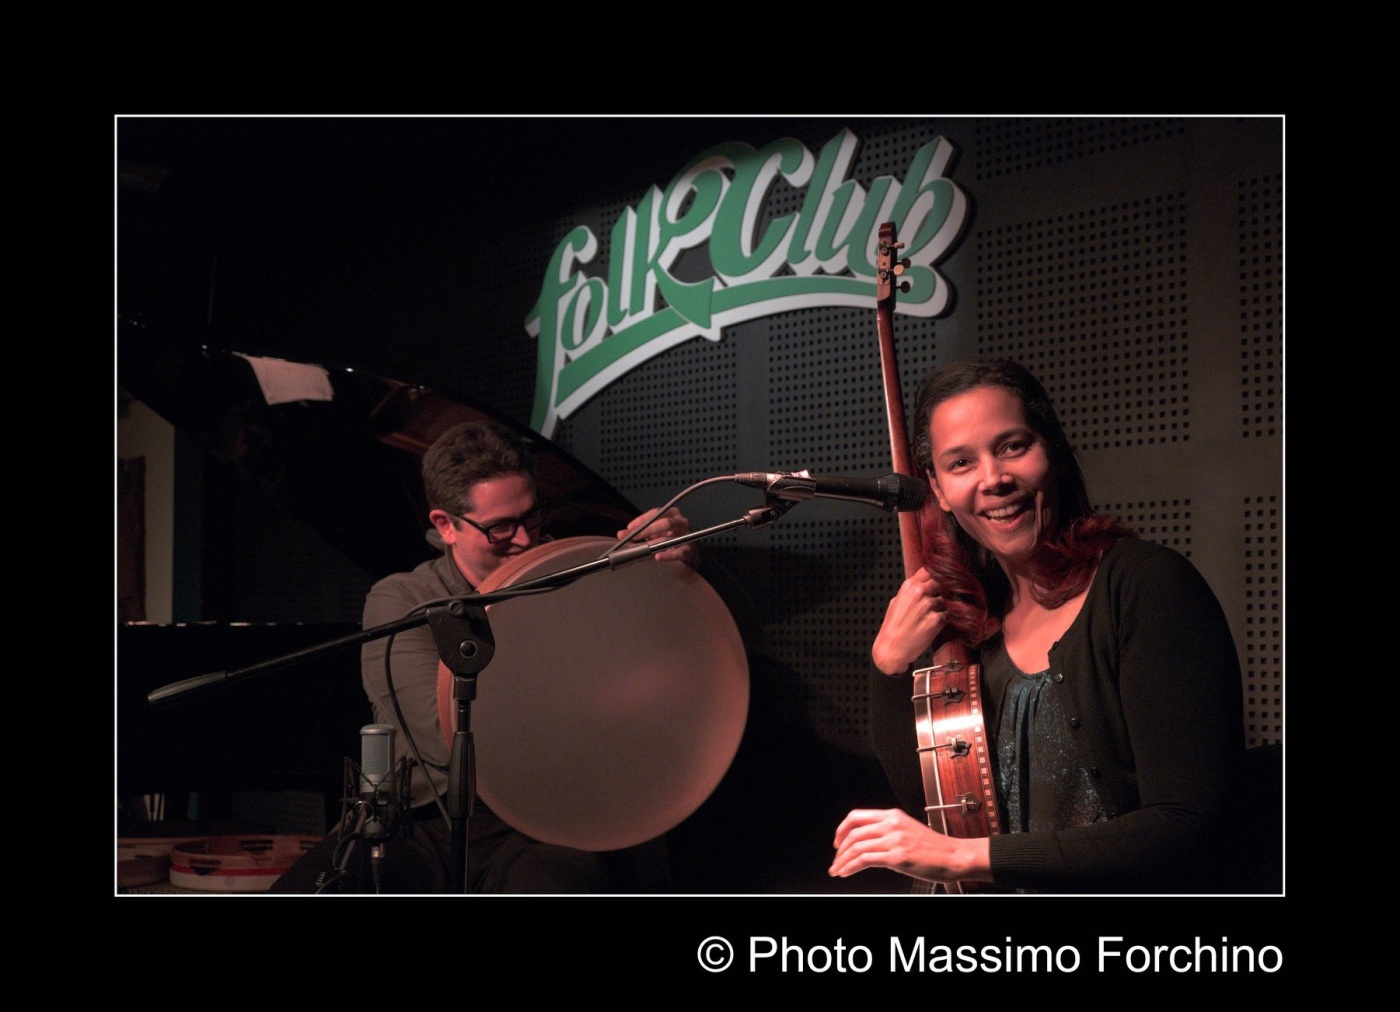 rhiannon-giddens-folk-club-foto-di-massimo-forchino